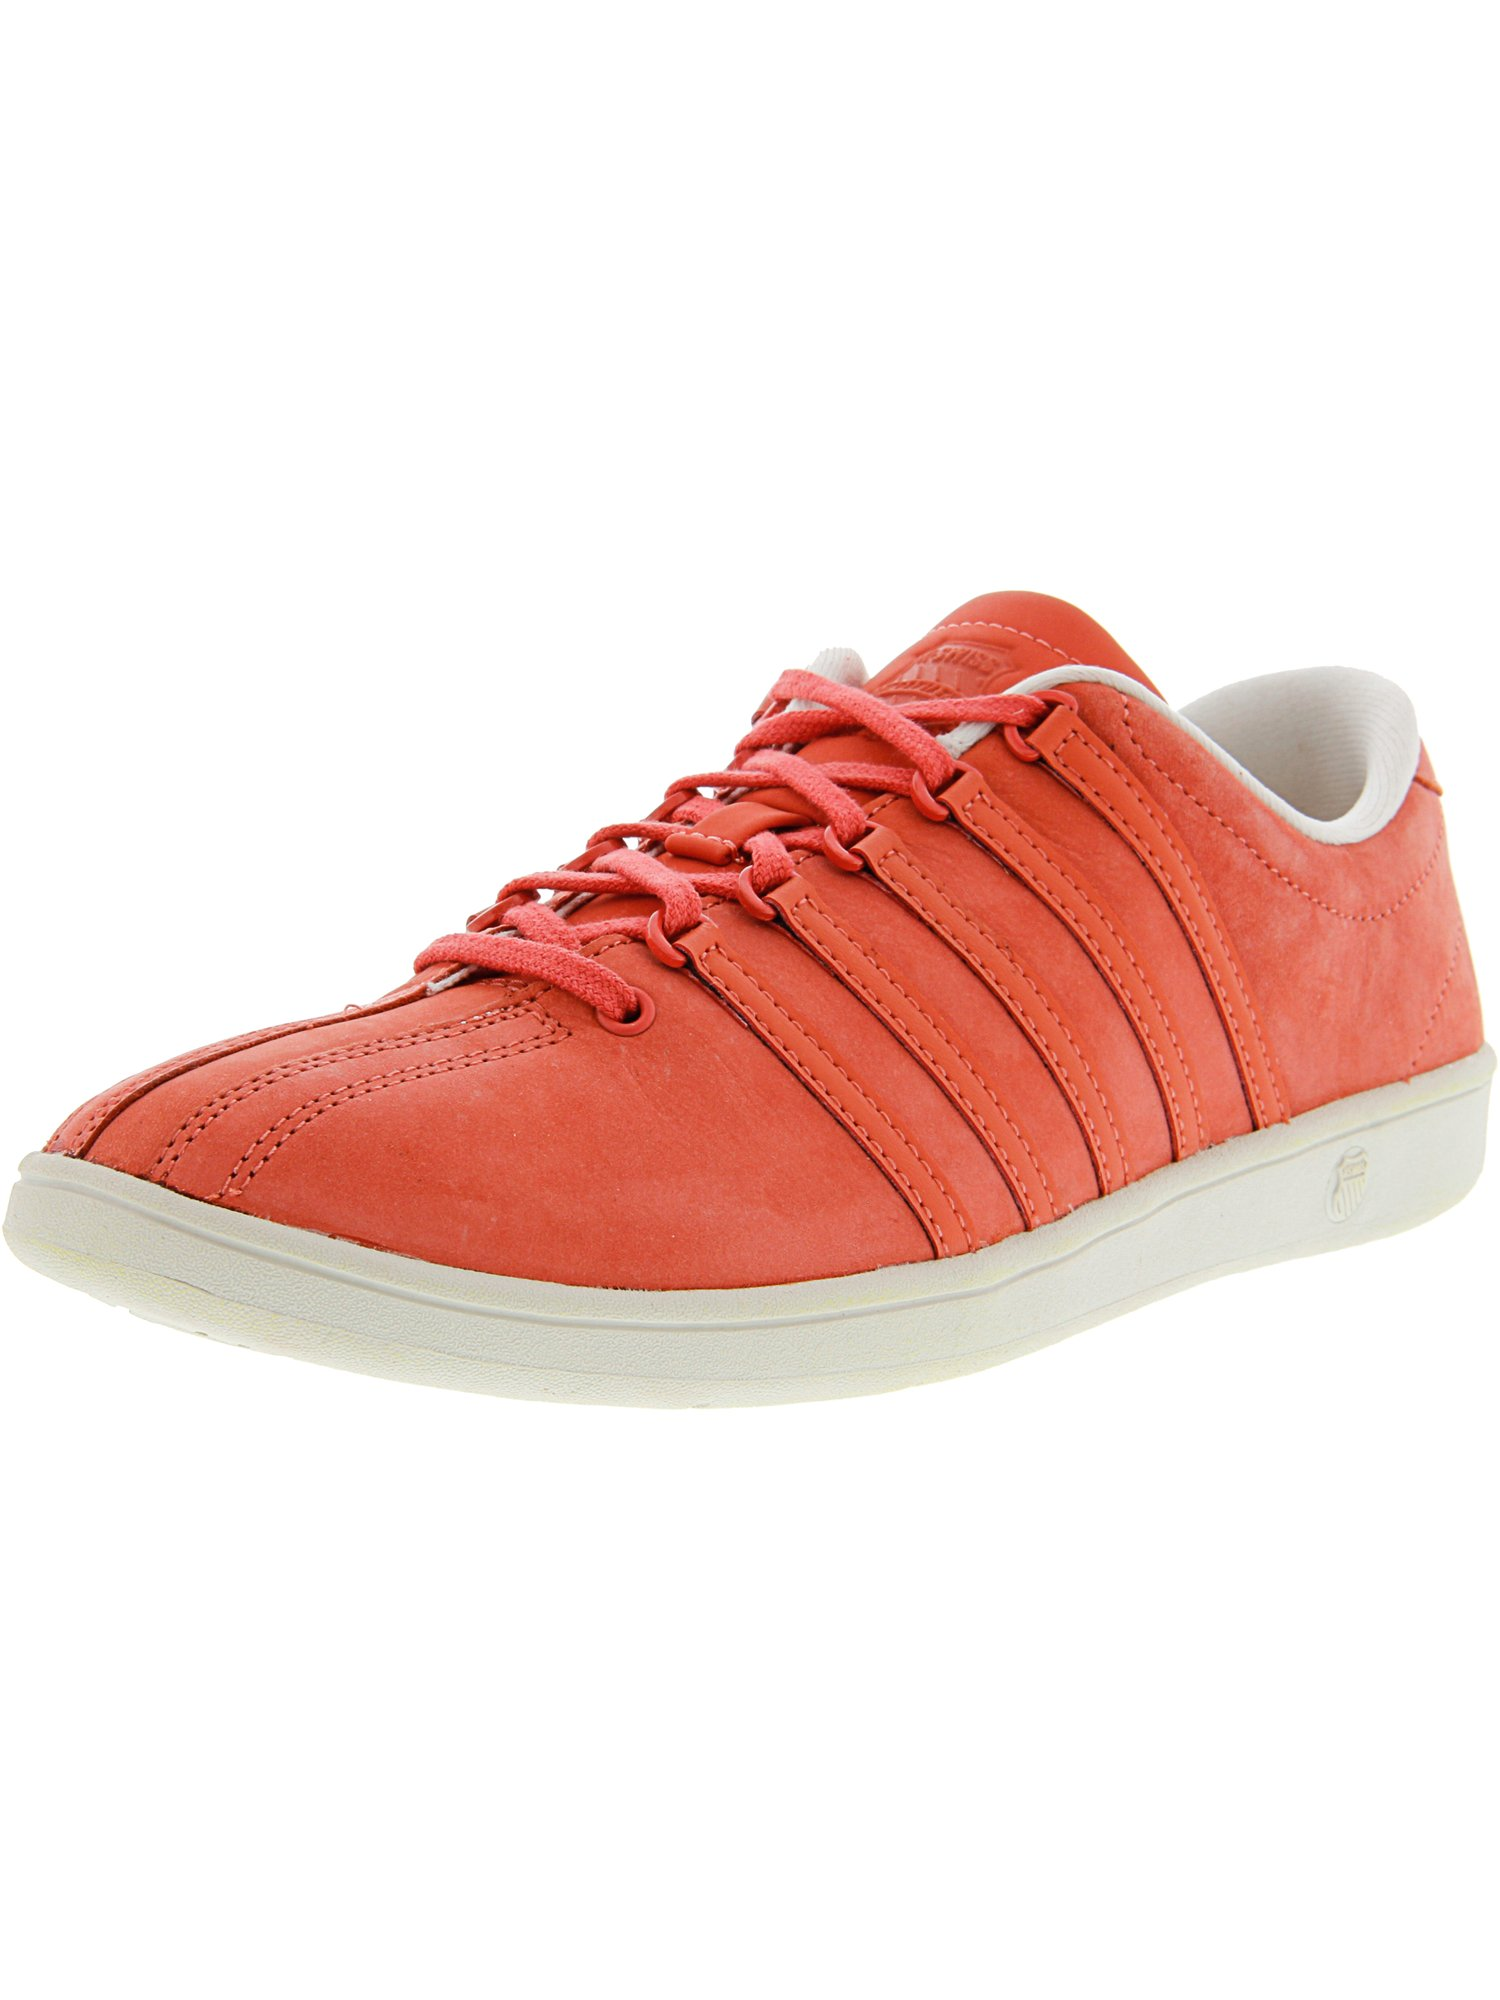 K-Swiss Women's Classic Sl P Hot Coral / Whitecap Gray Ankle-High Nubuck Fashion Sneaker - 9M